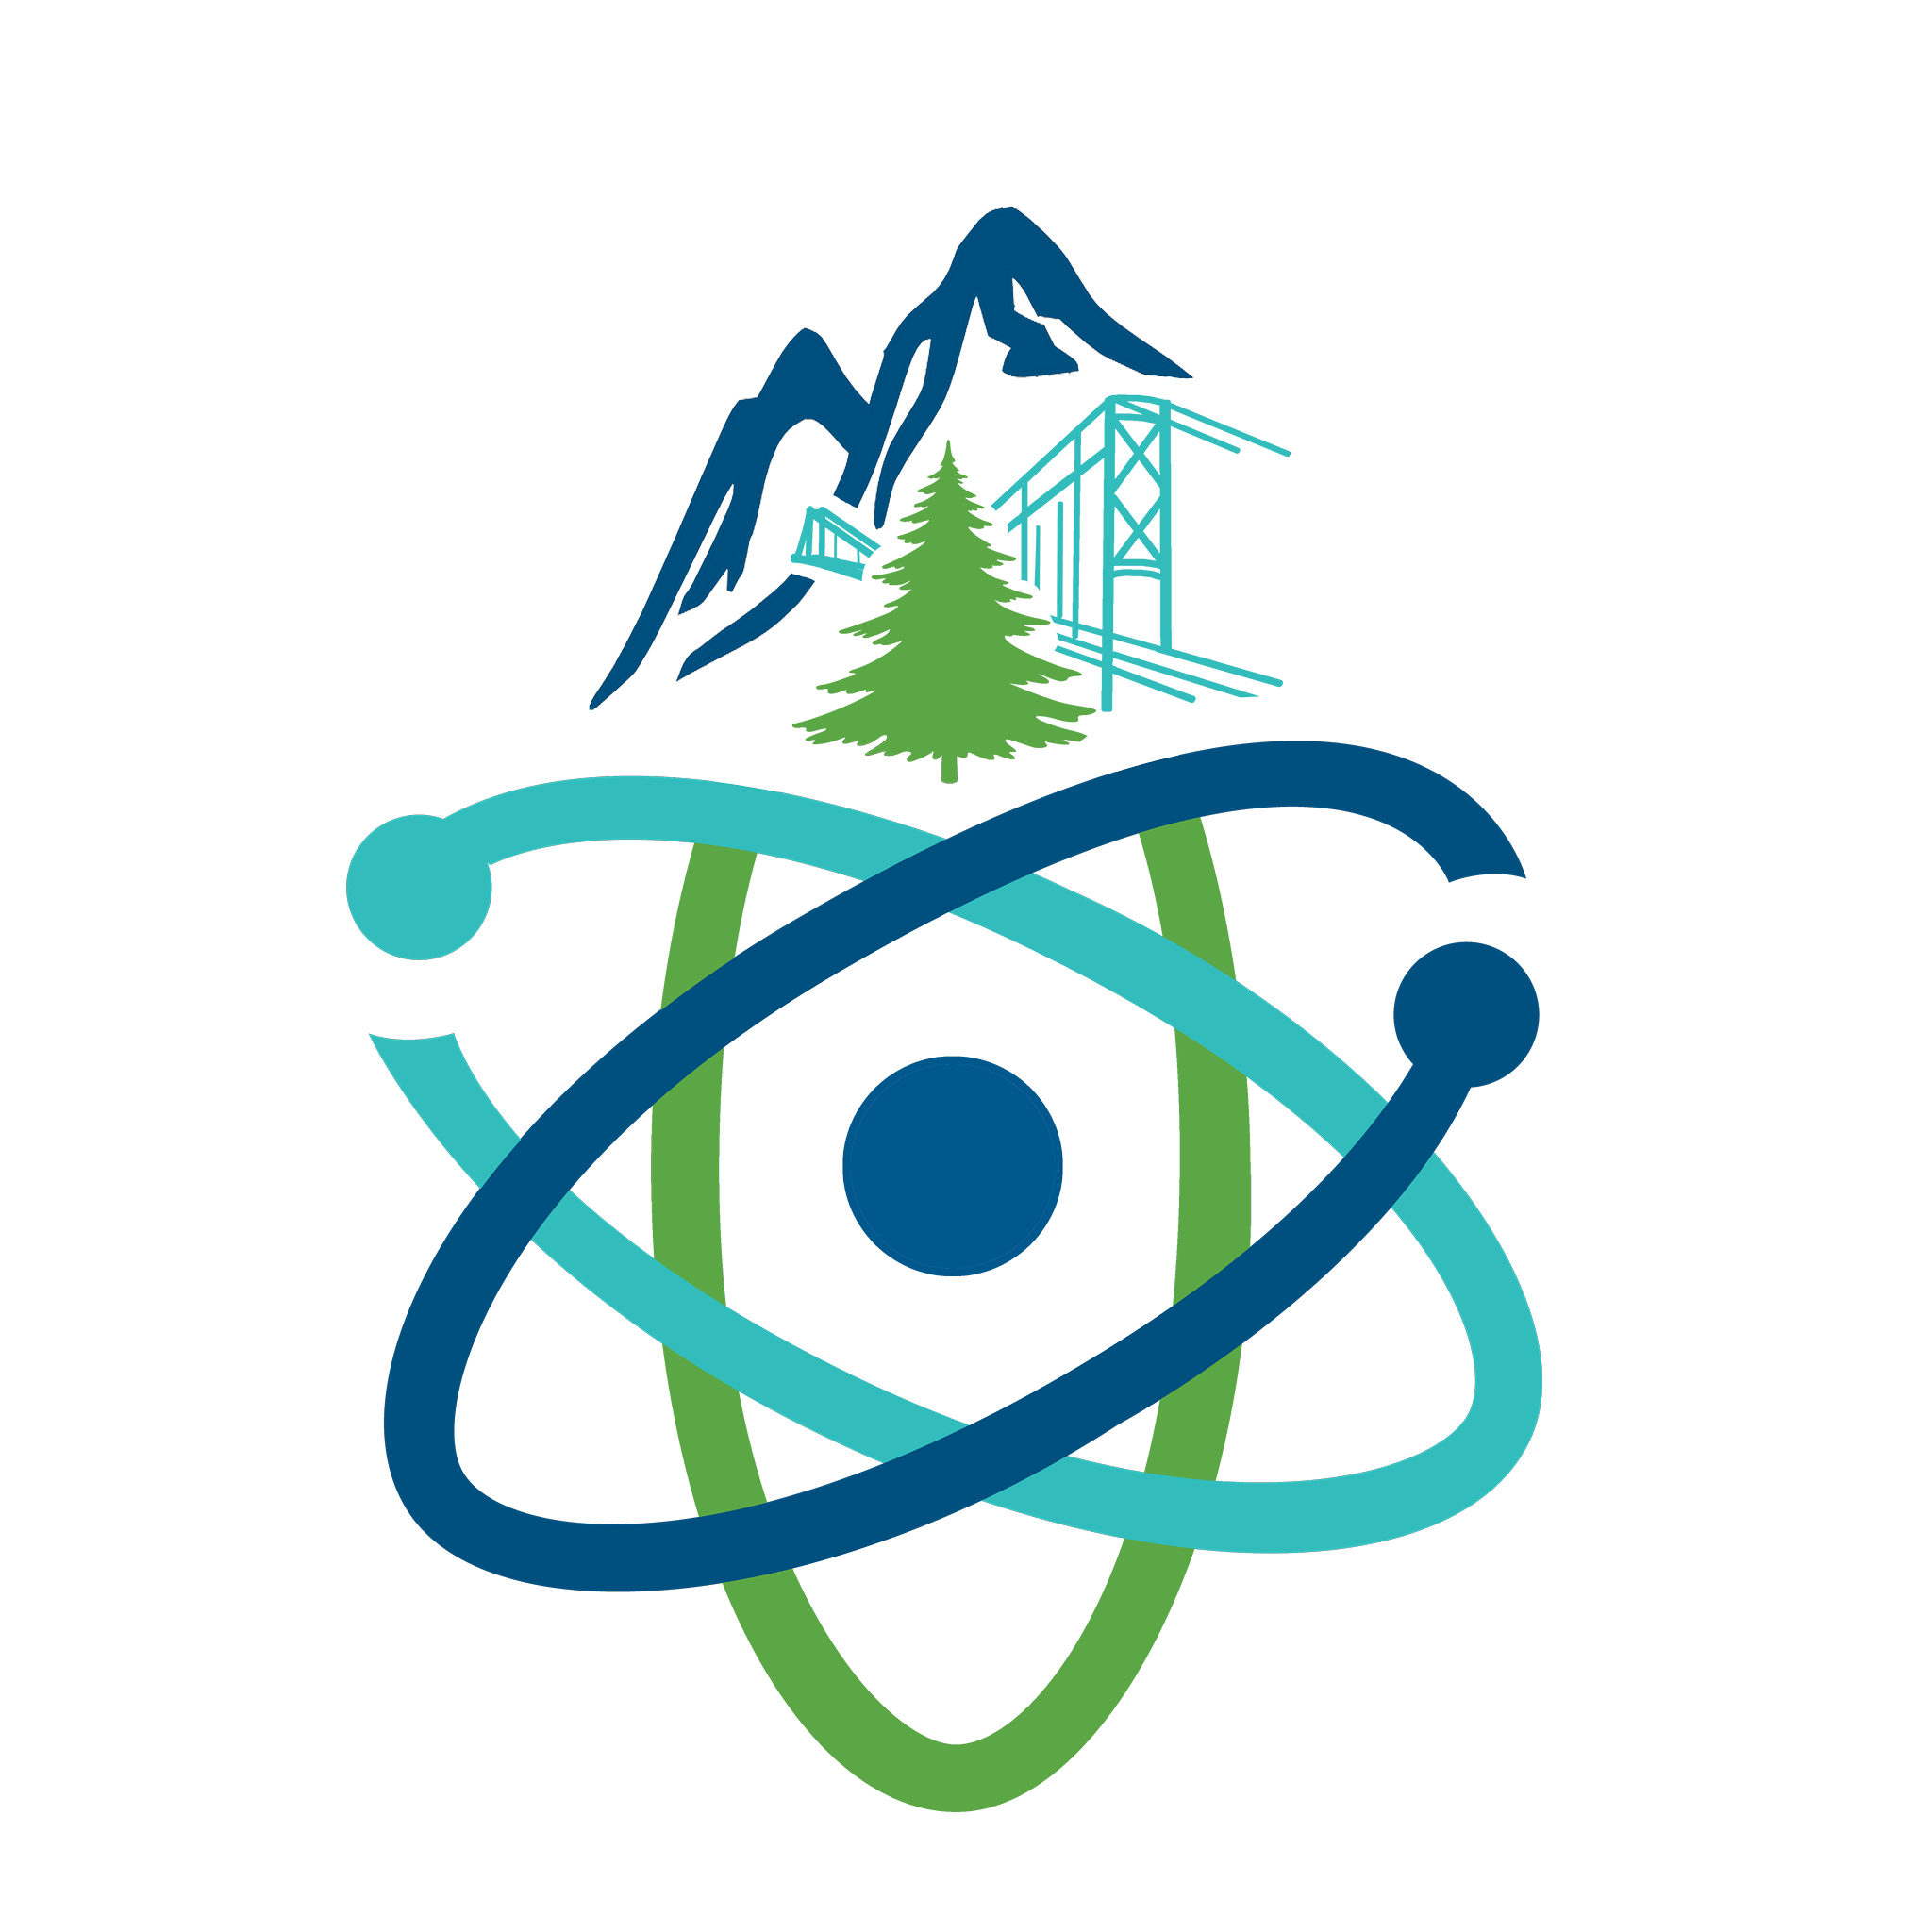 The logo of March for science Vancouver